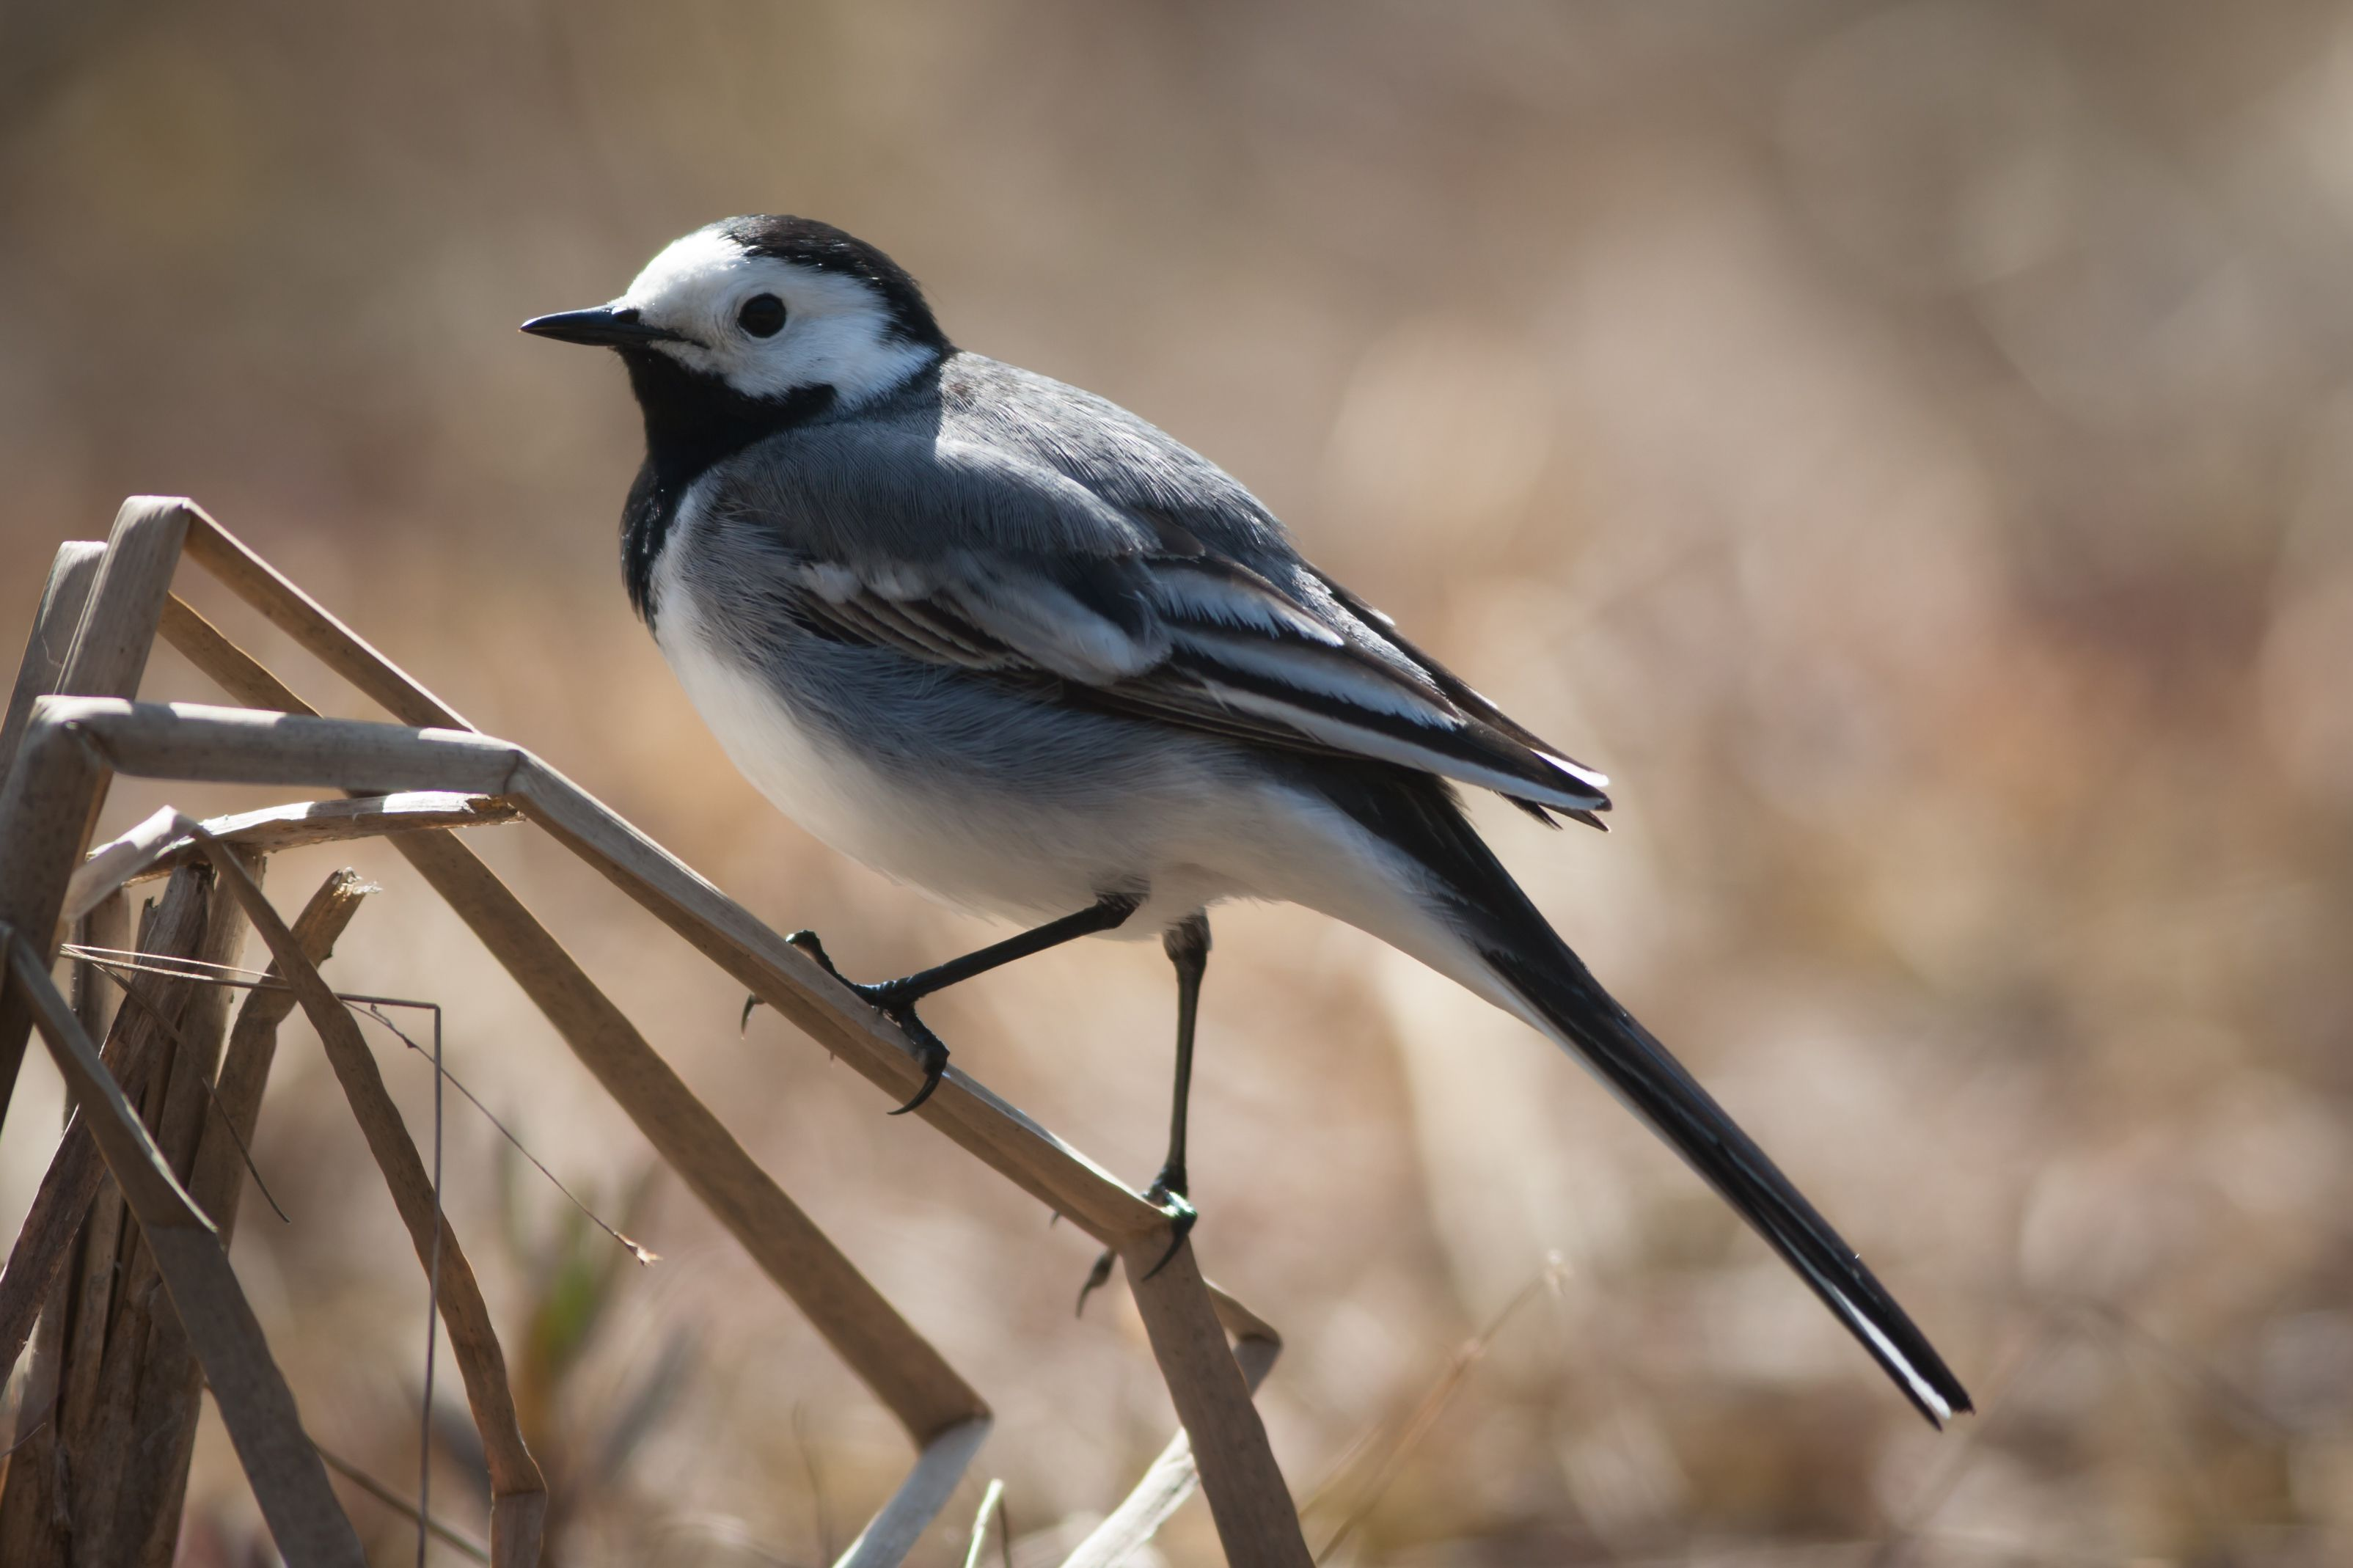 White wagtail / Västäräkki, by Teemu Saloriutta - My favorite birds with Blue tit.